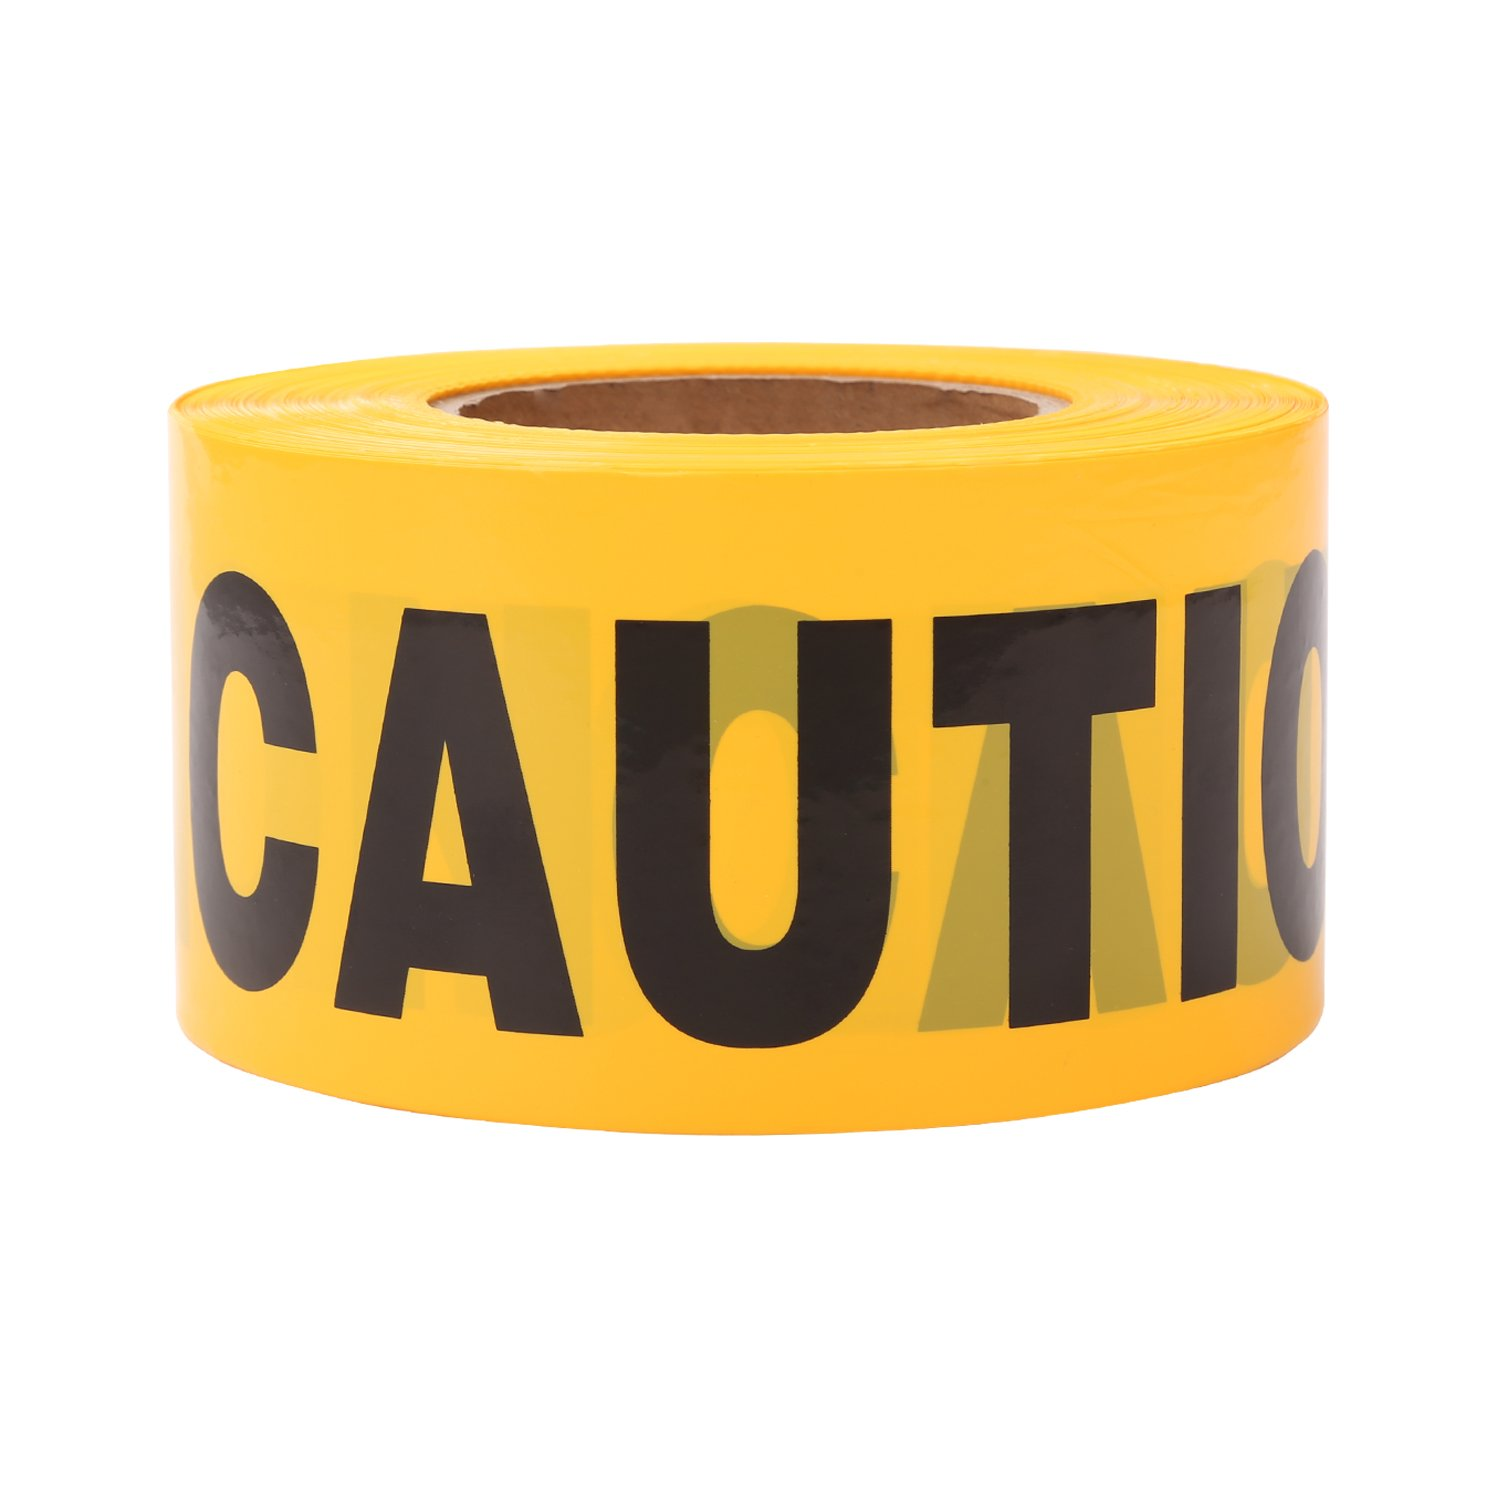 TopSoon Yellow CAUTION Tape Safety Barrier Tape Ribbon Tape 3-Inch by 1000-Feet Roll Non-Adhesive